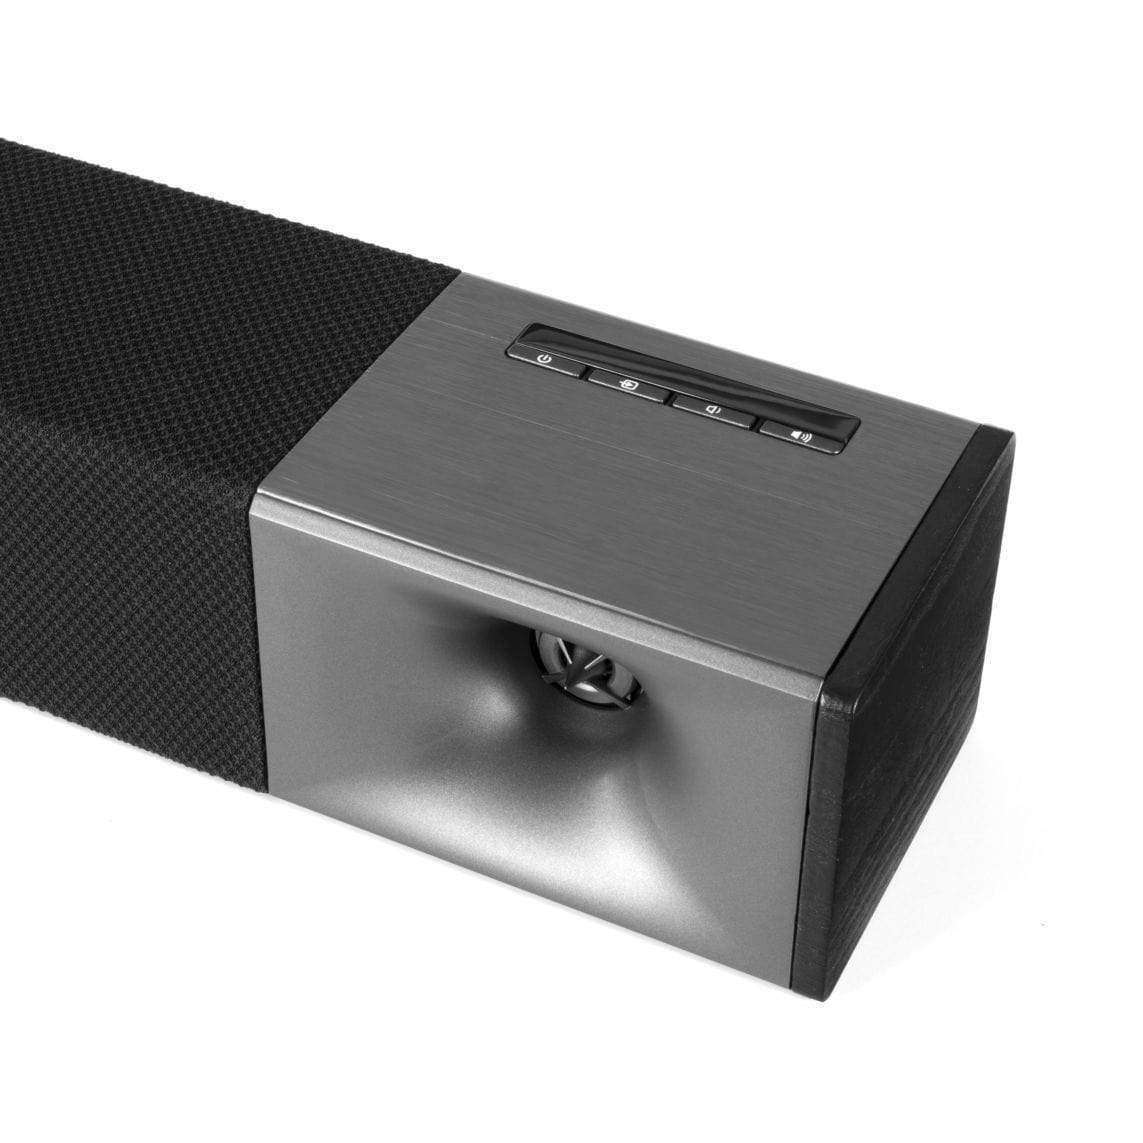 Klipsch BAR 40 Sound Bar